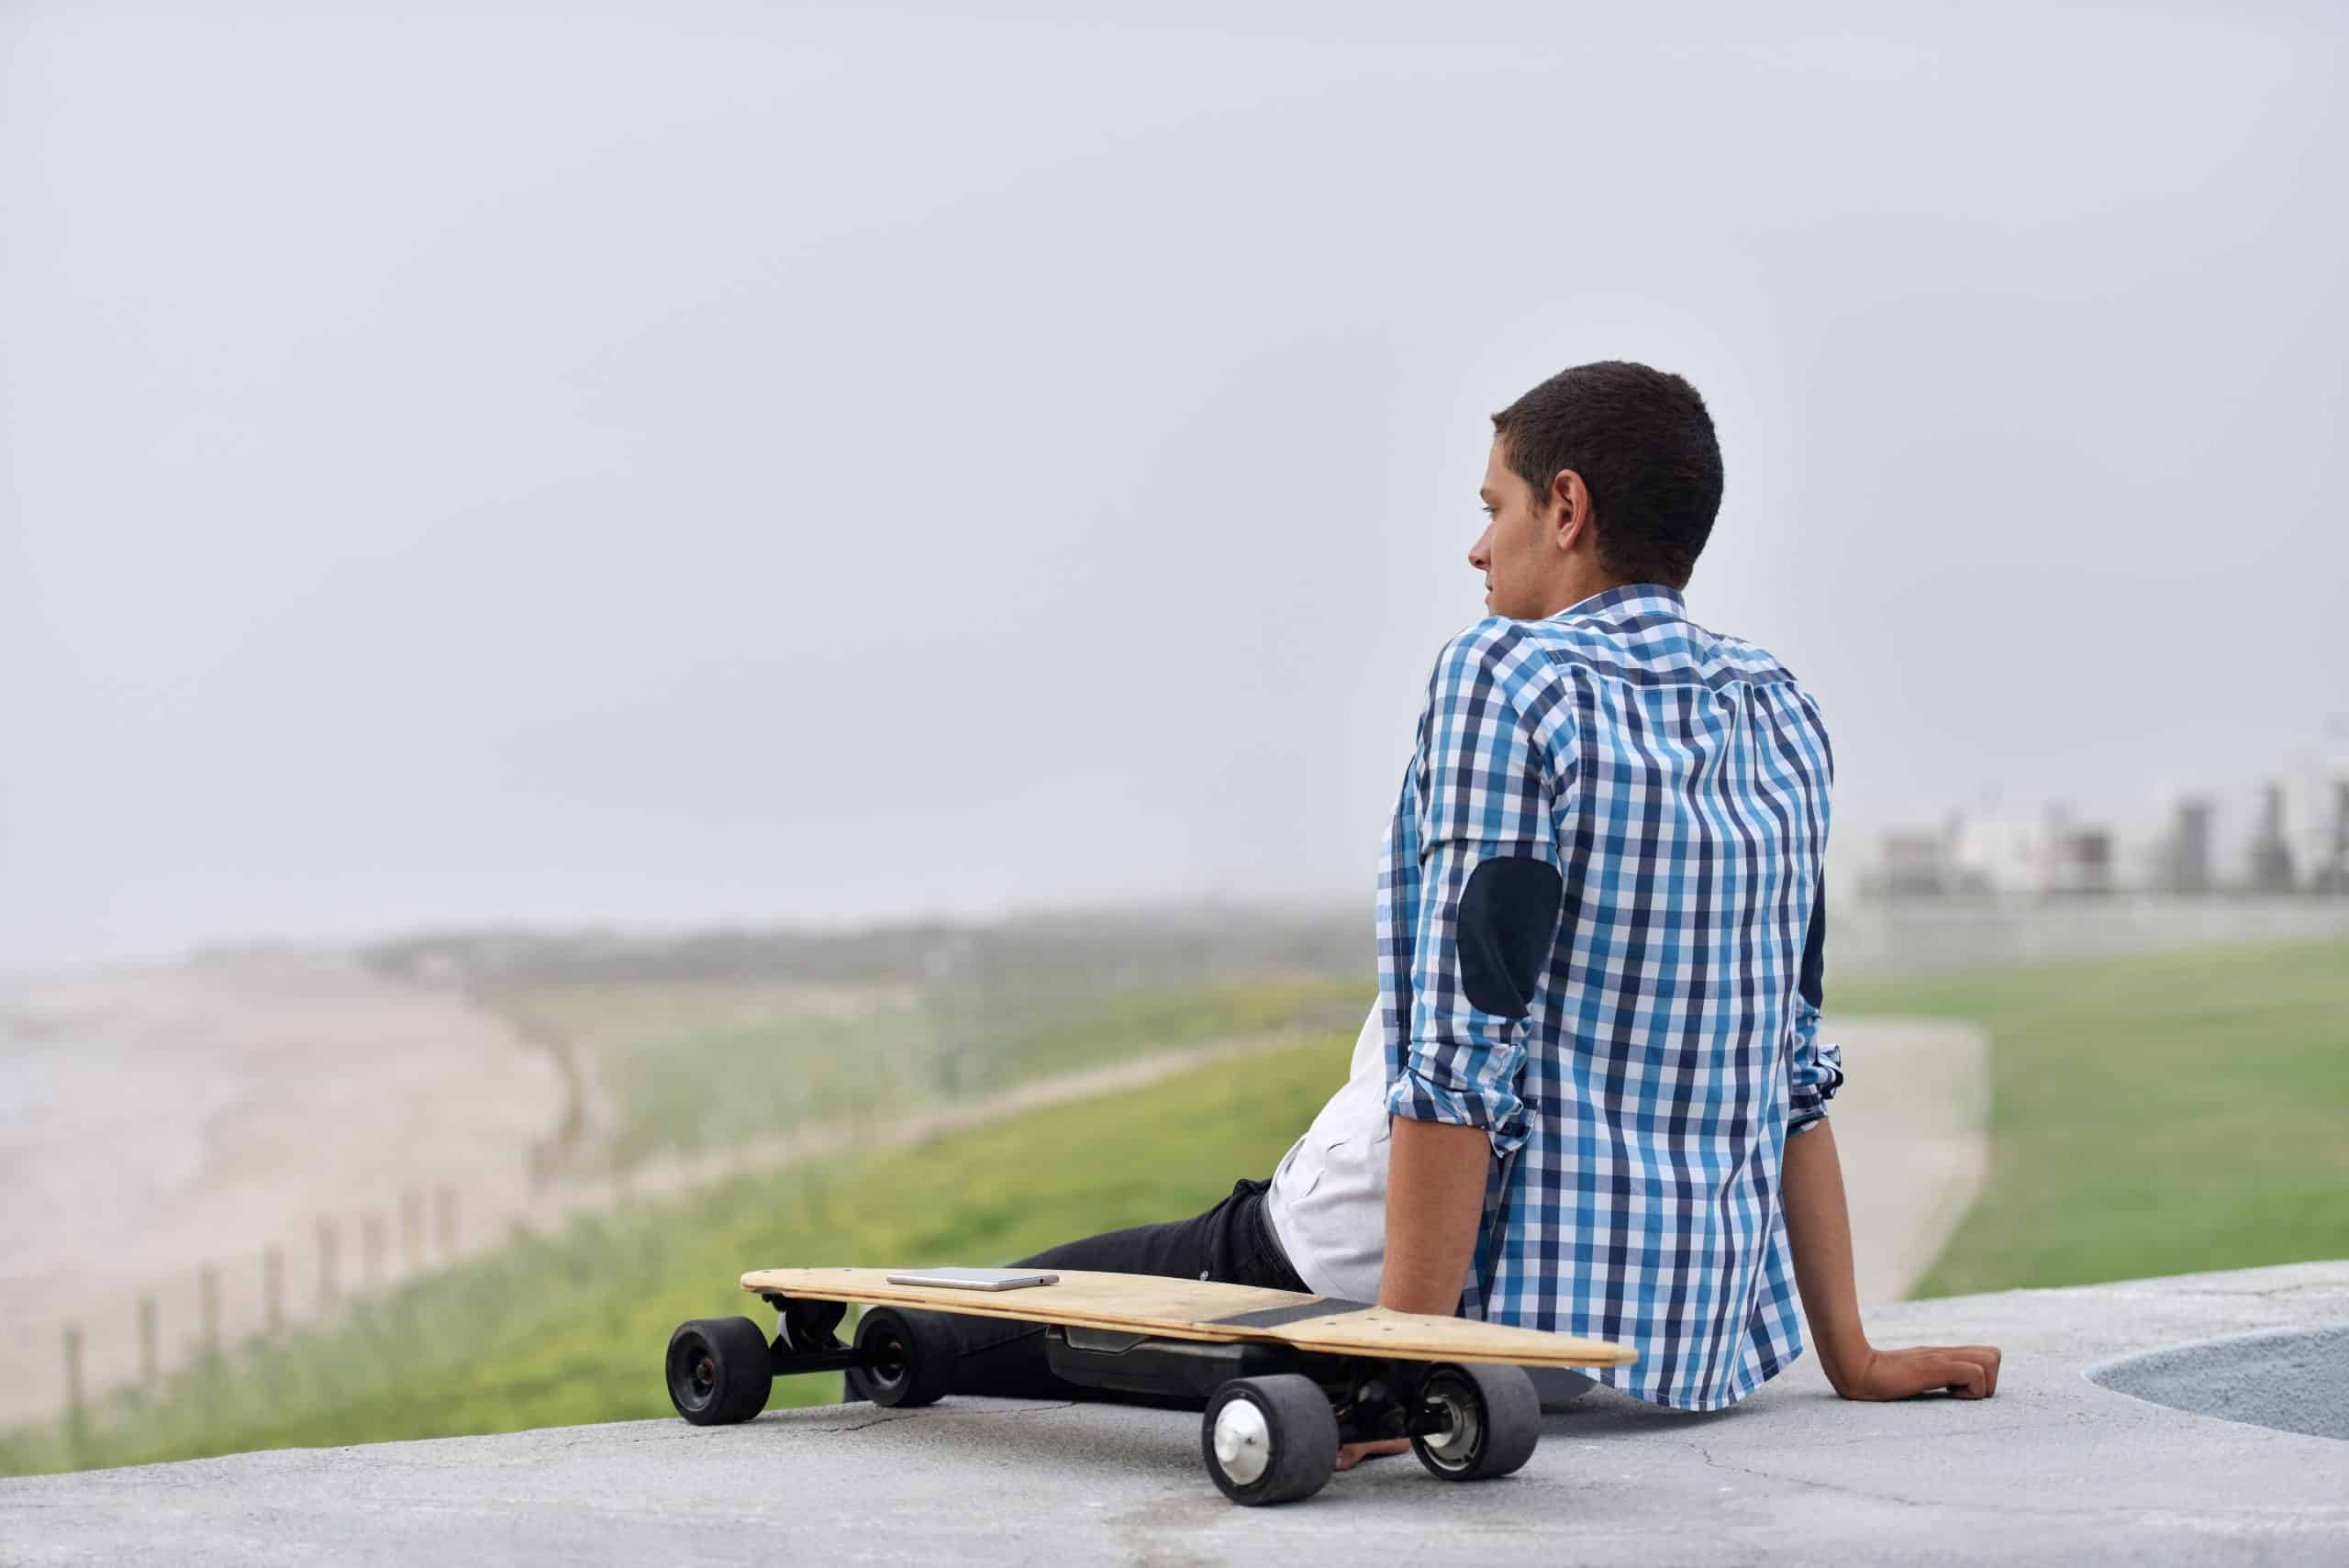 How Much Does an Electric Skateboard Cost?